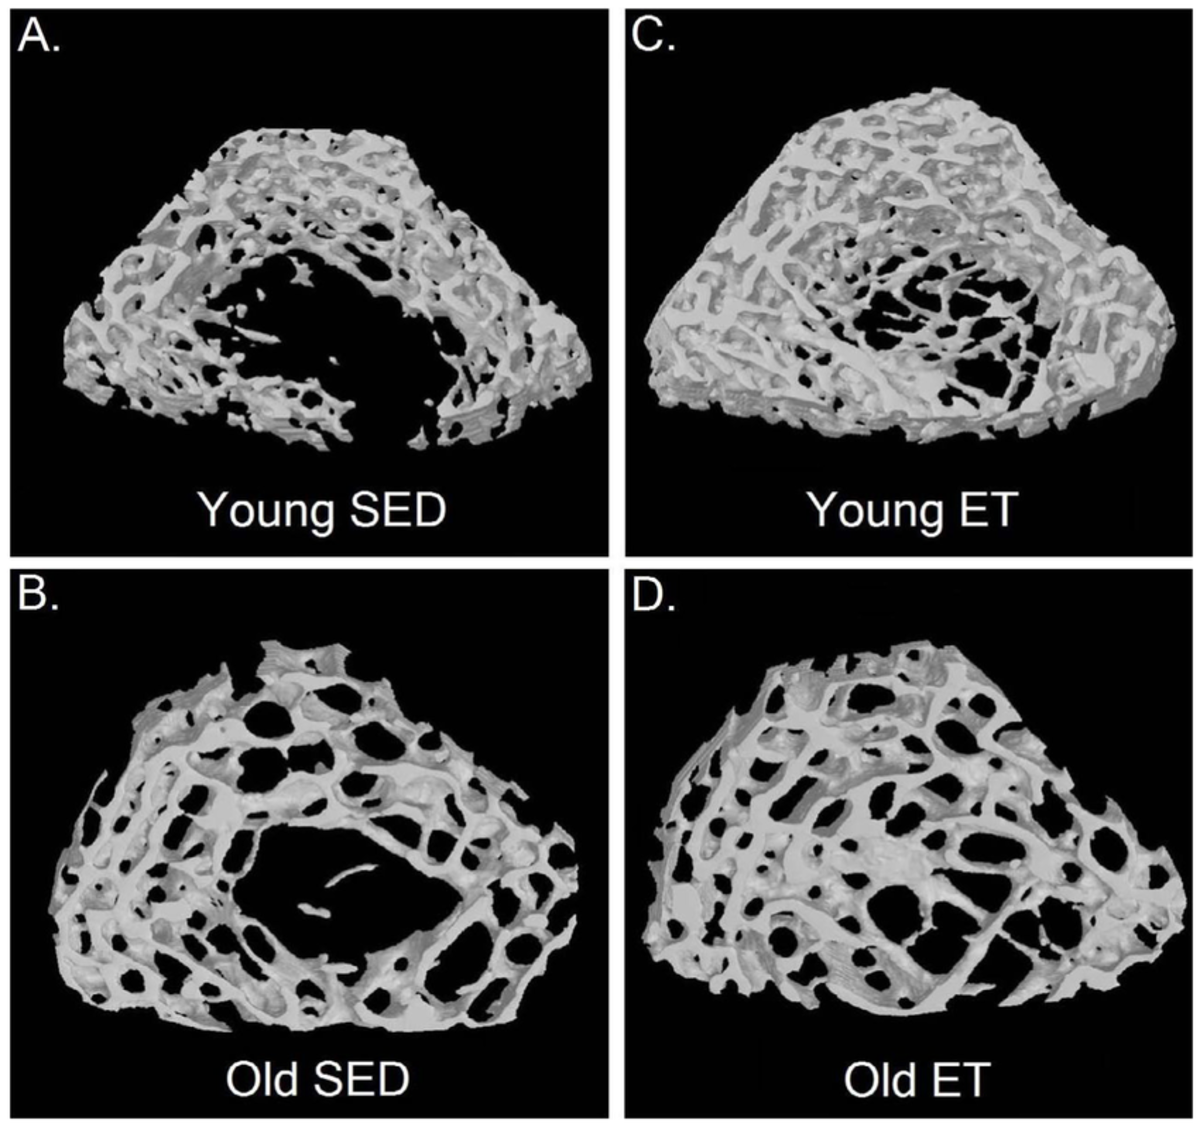 Cross sections of bone belonging to old and young sedentary vs exercise trained individuals